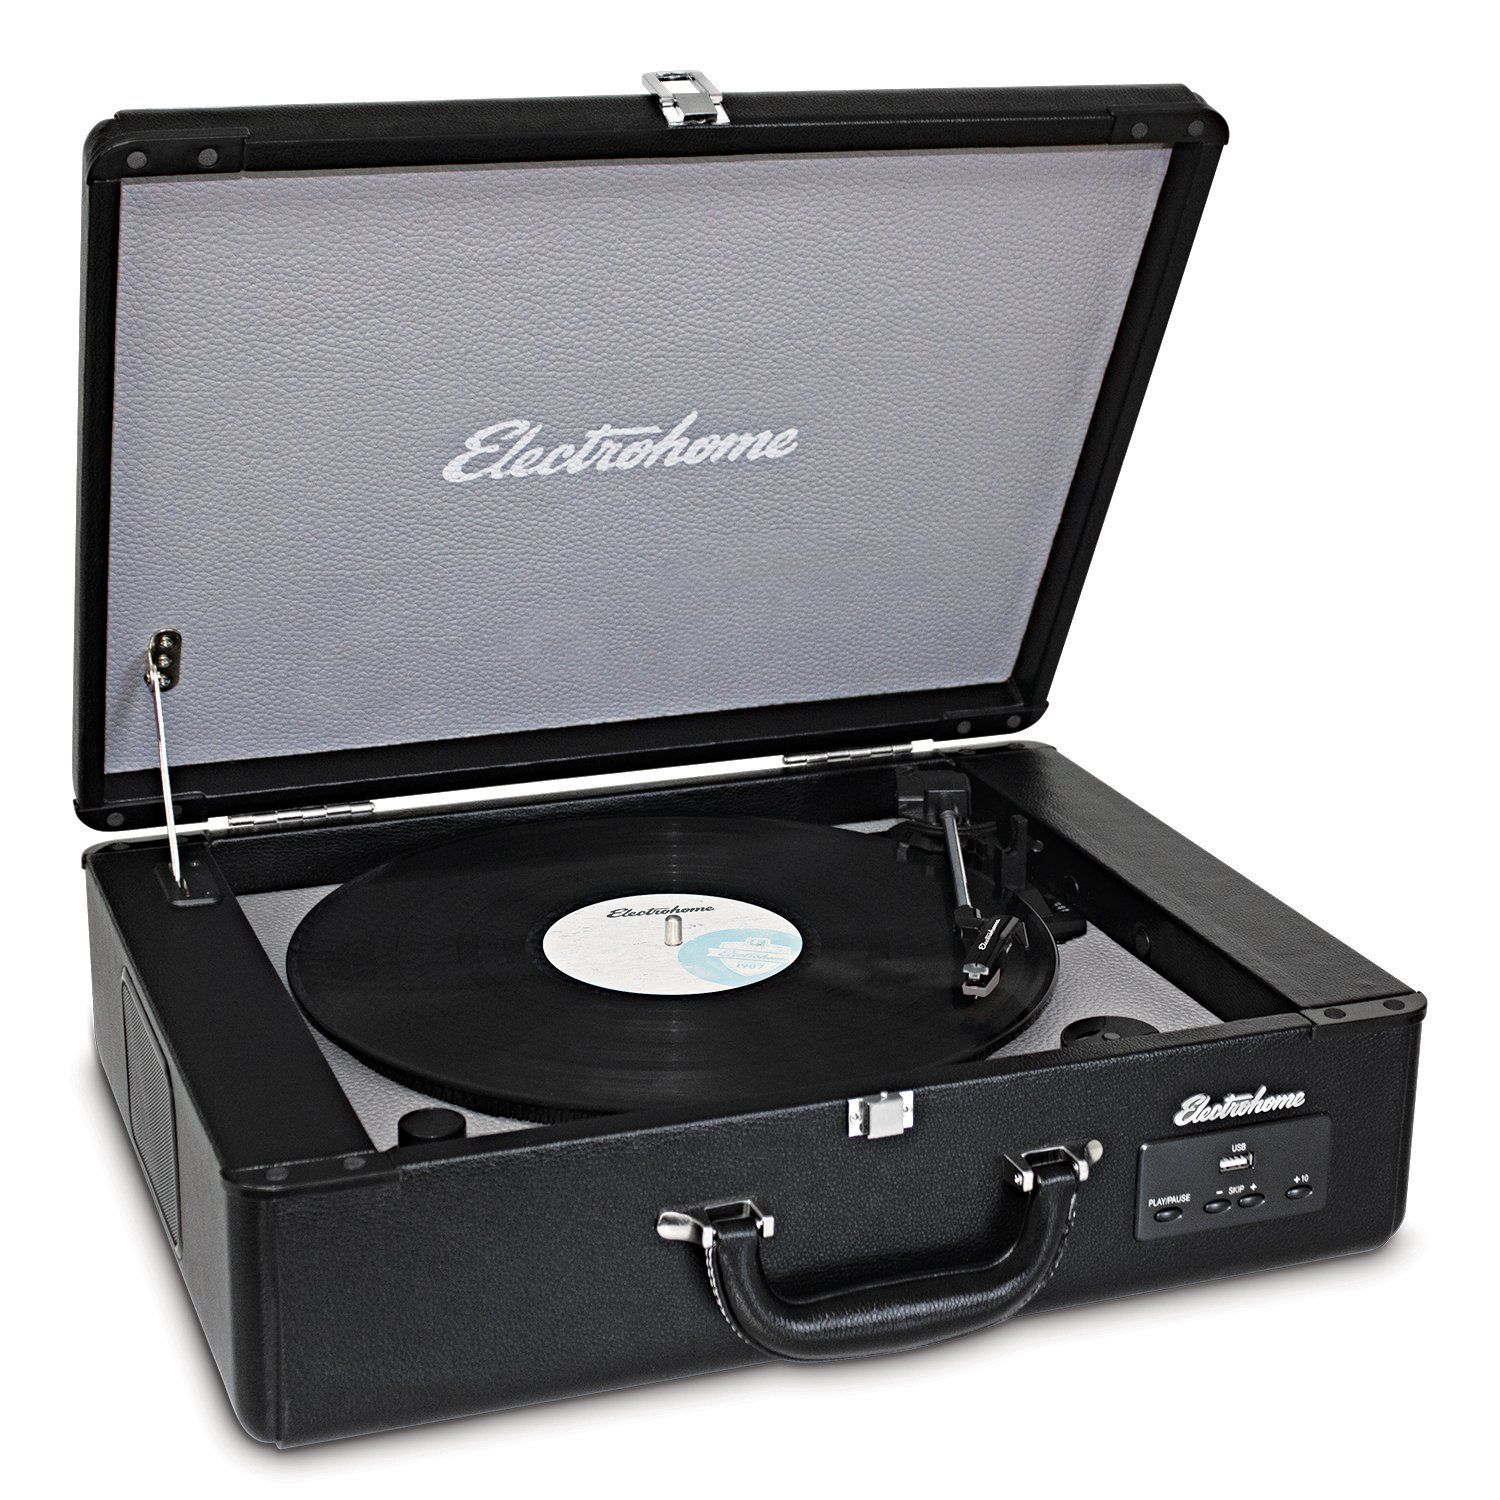 electrohome archer vinyl record player classic turntable stereo